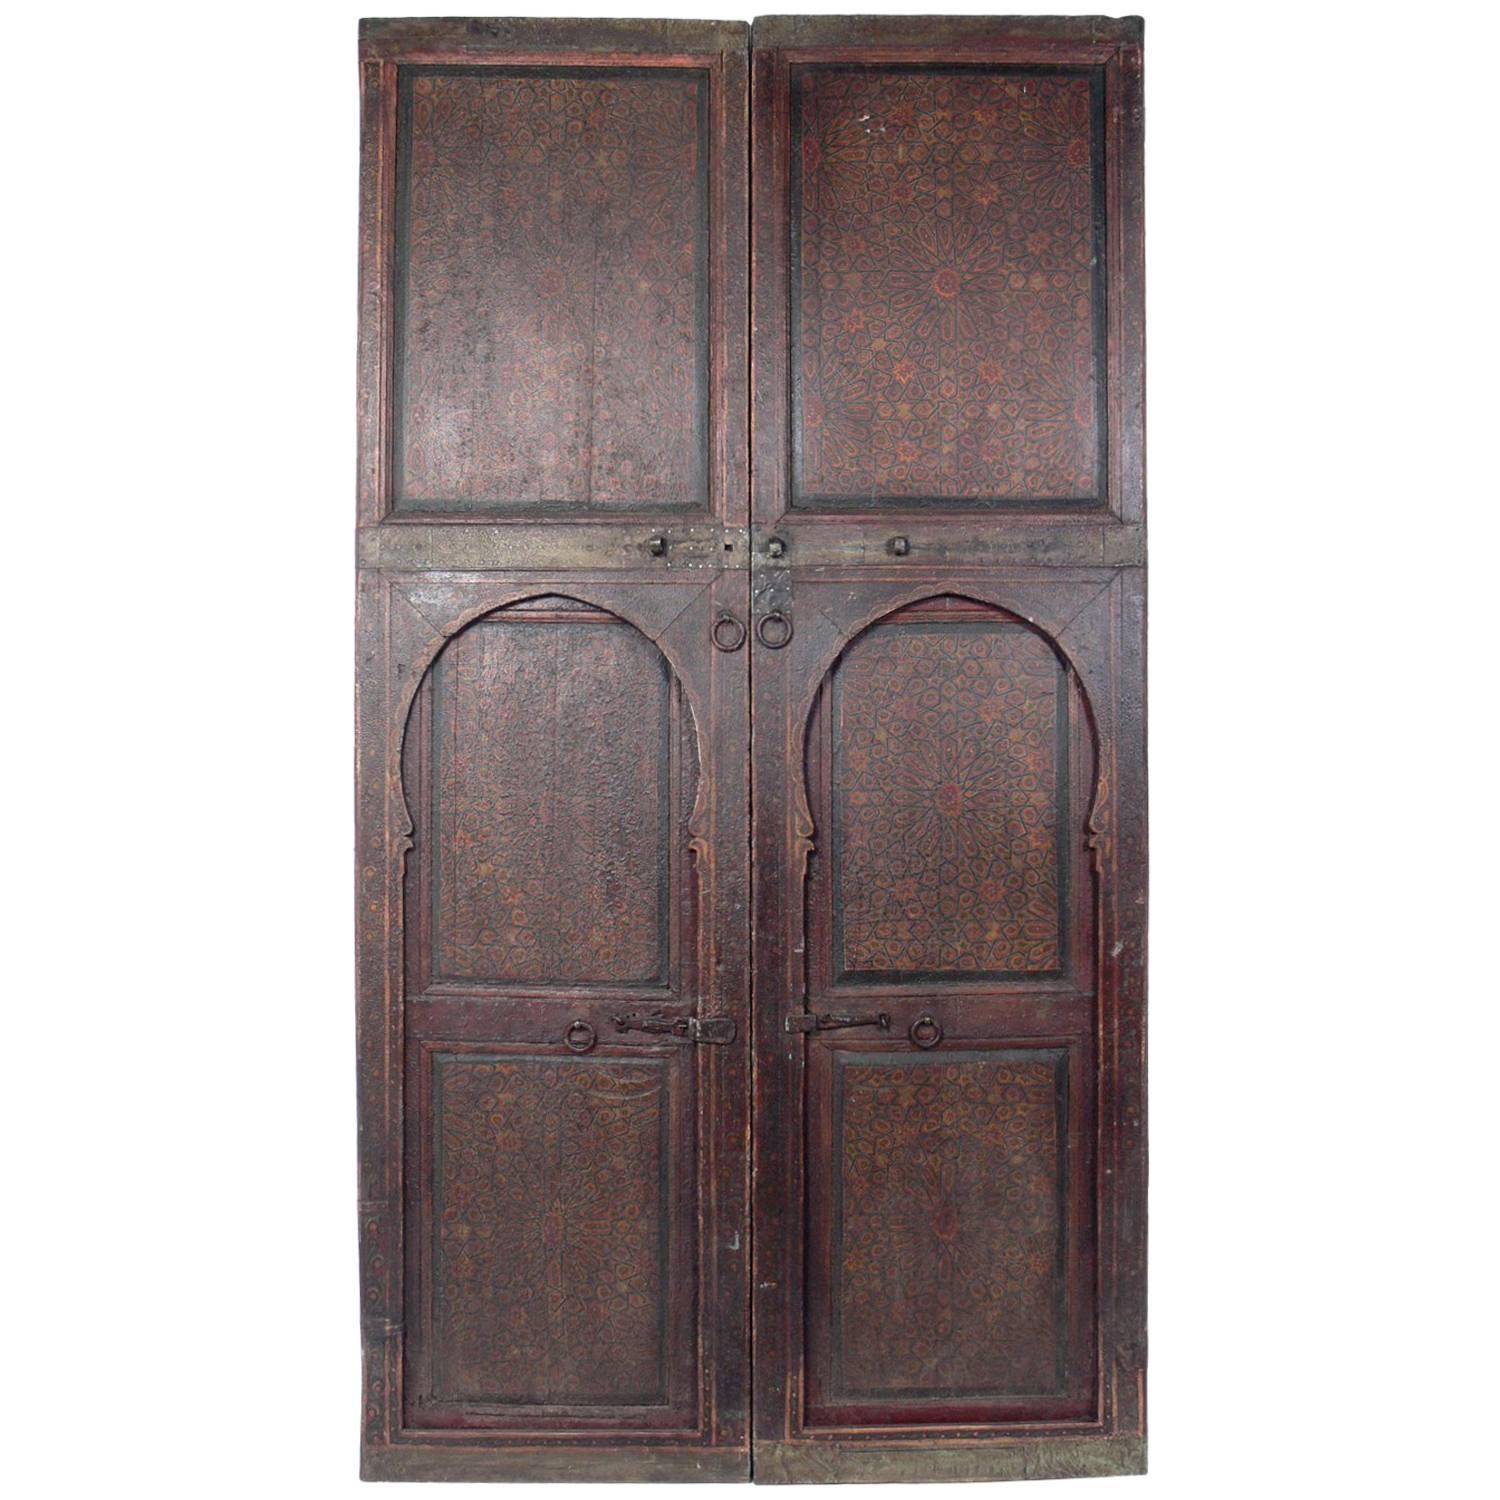 Pair of Exotic Hand-Painted Antique Moroccan Doors - Pair Of Spanish Wood Carved Doors With Carved Pattern And Warm